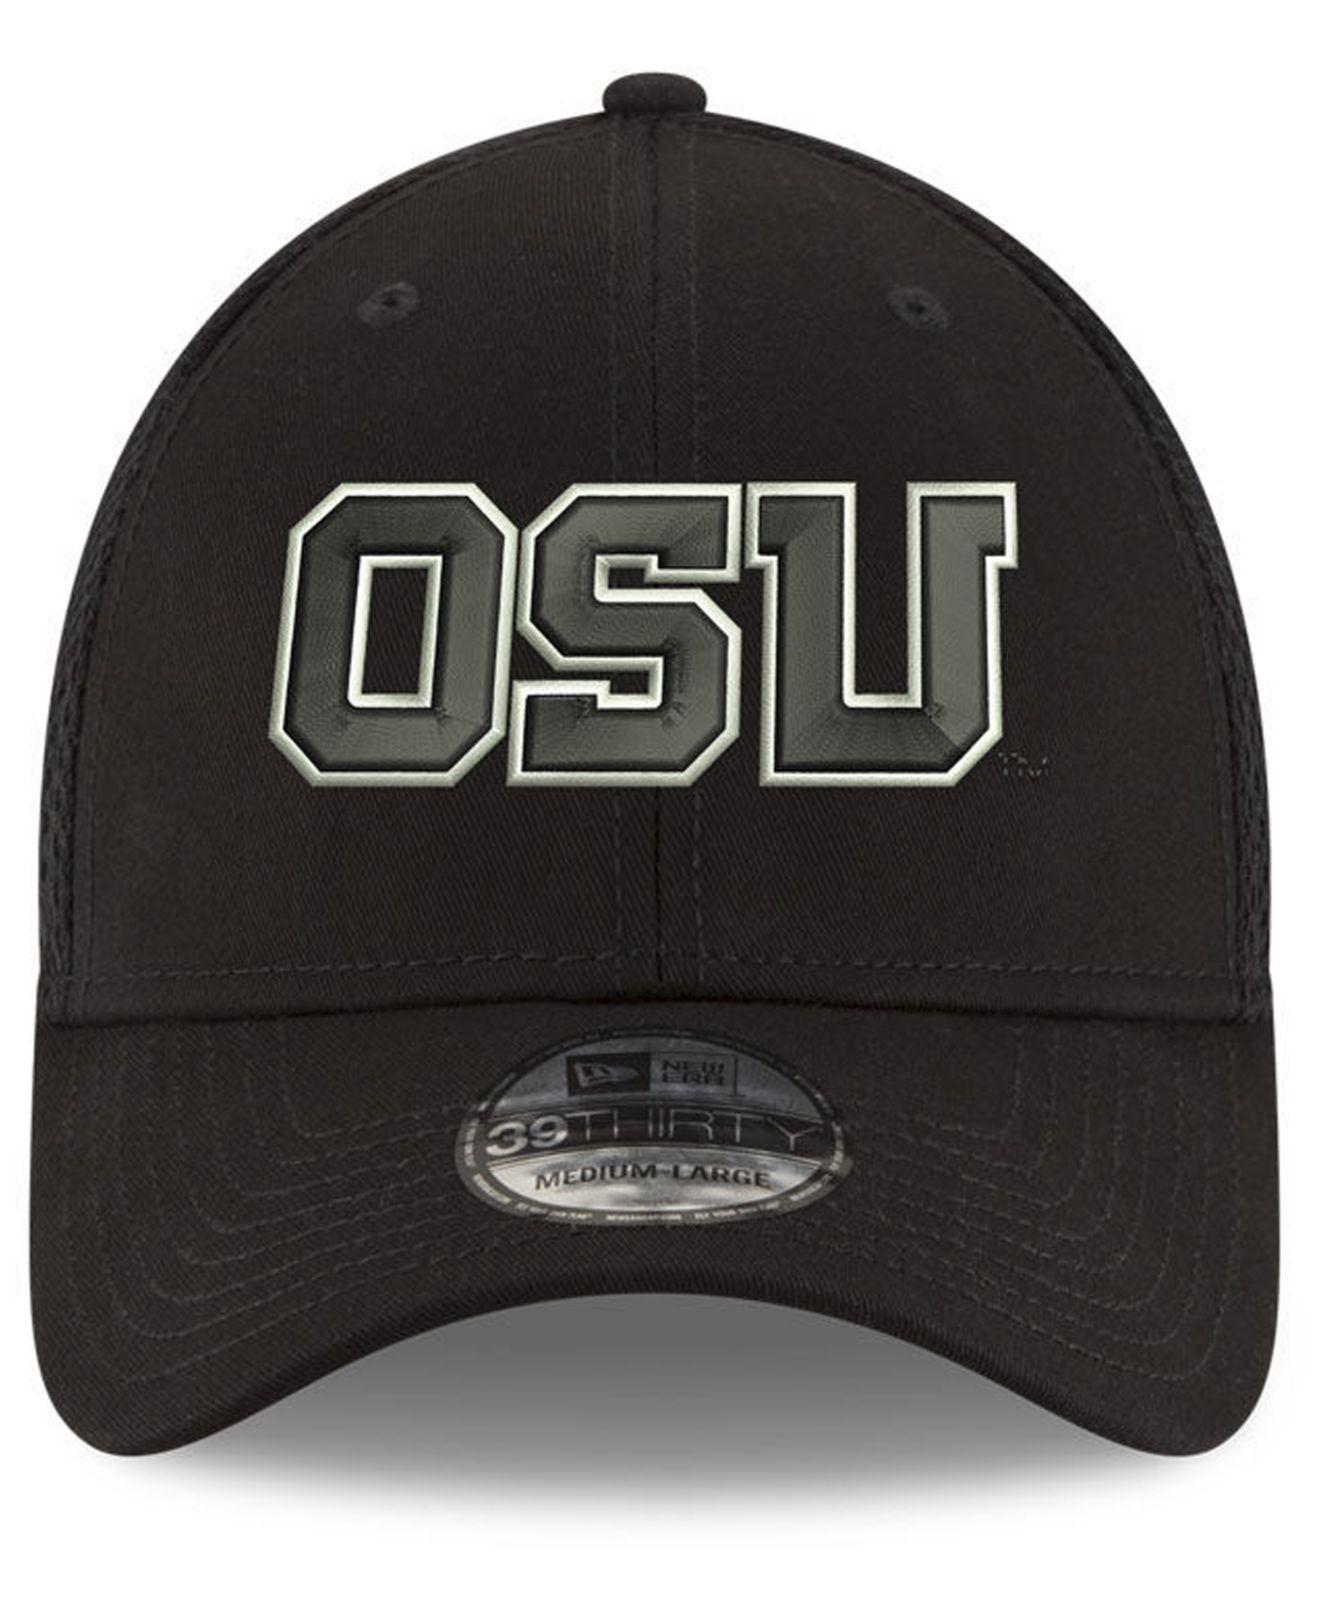 ae57c2cd00eb0 Lyst - KTZ Oregon State Beavers Black White Neo 39thirty Cap in Black for  Men